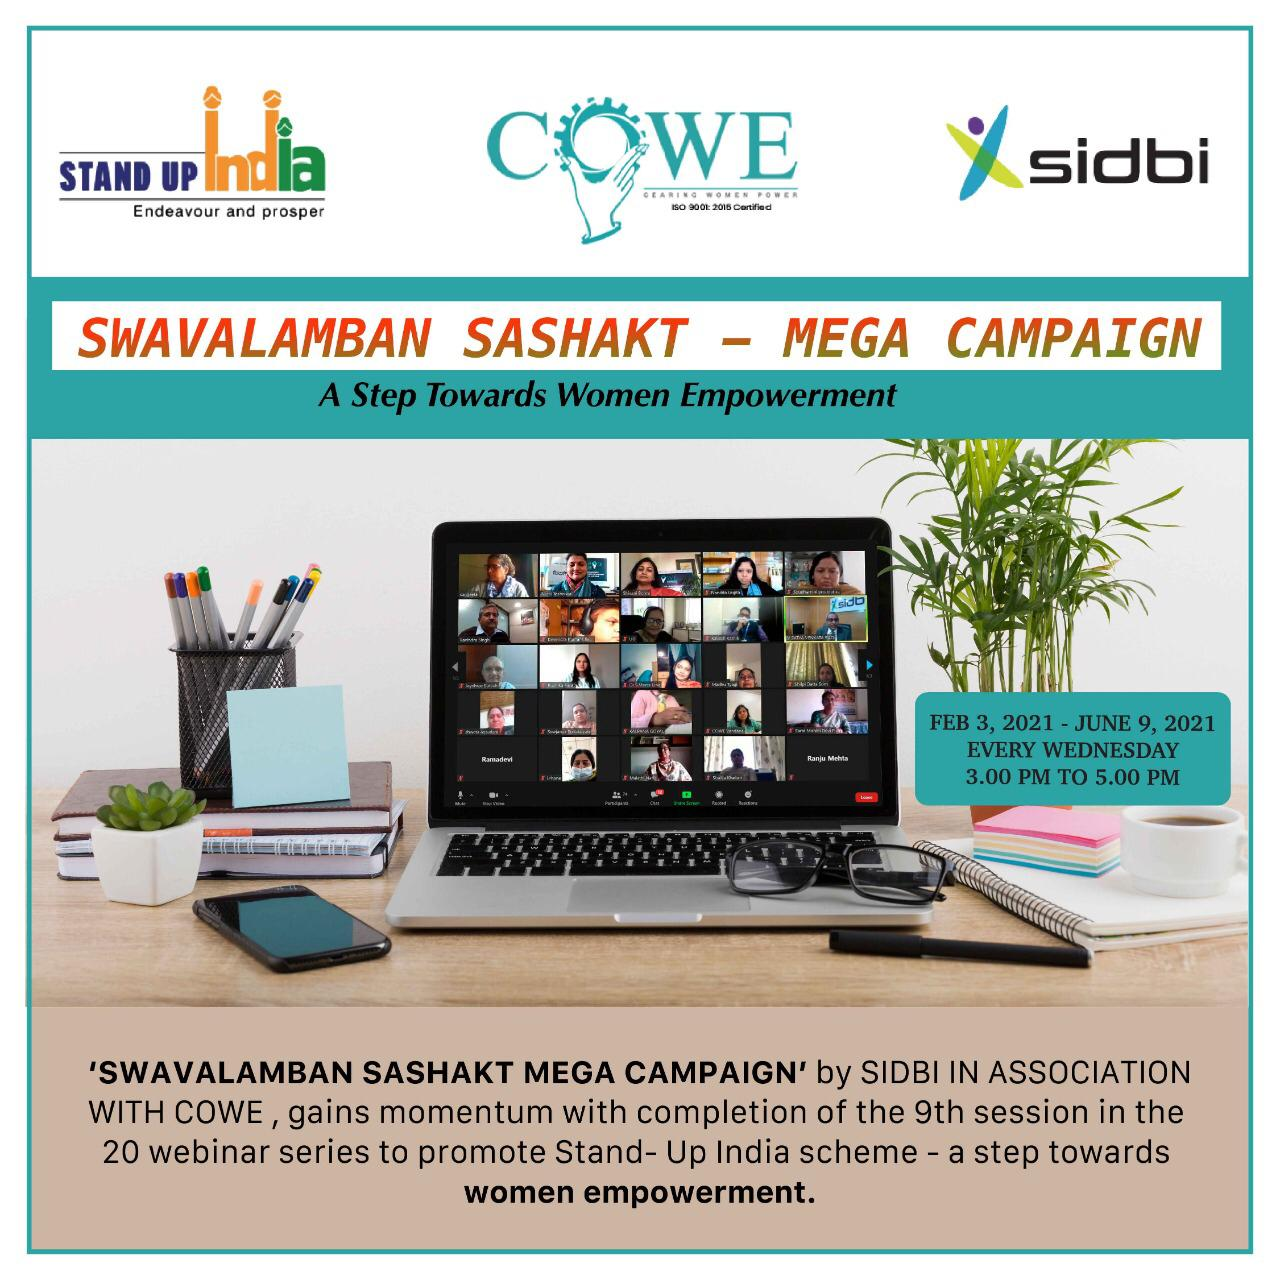 'SWAVALAMBAN SASHAKT MEGA CAMPAIGN' BY SIDBI IN ASSOCIATION WITH COWE INDIA